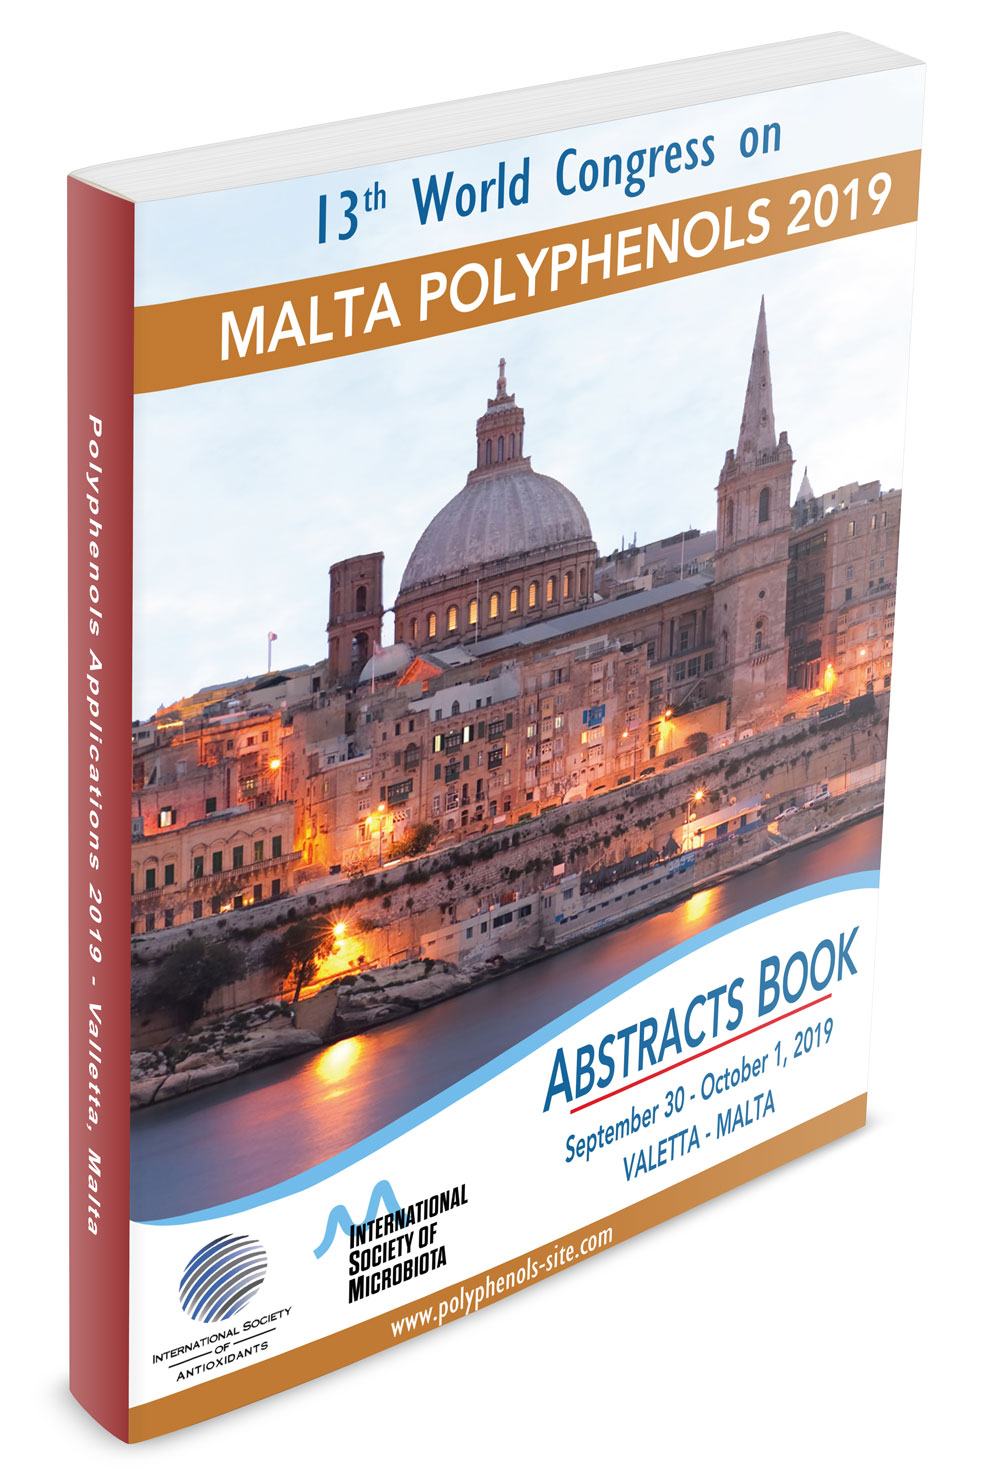 Abstracts Book of Malta Polyphenols 2019 Available